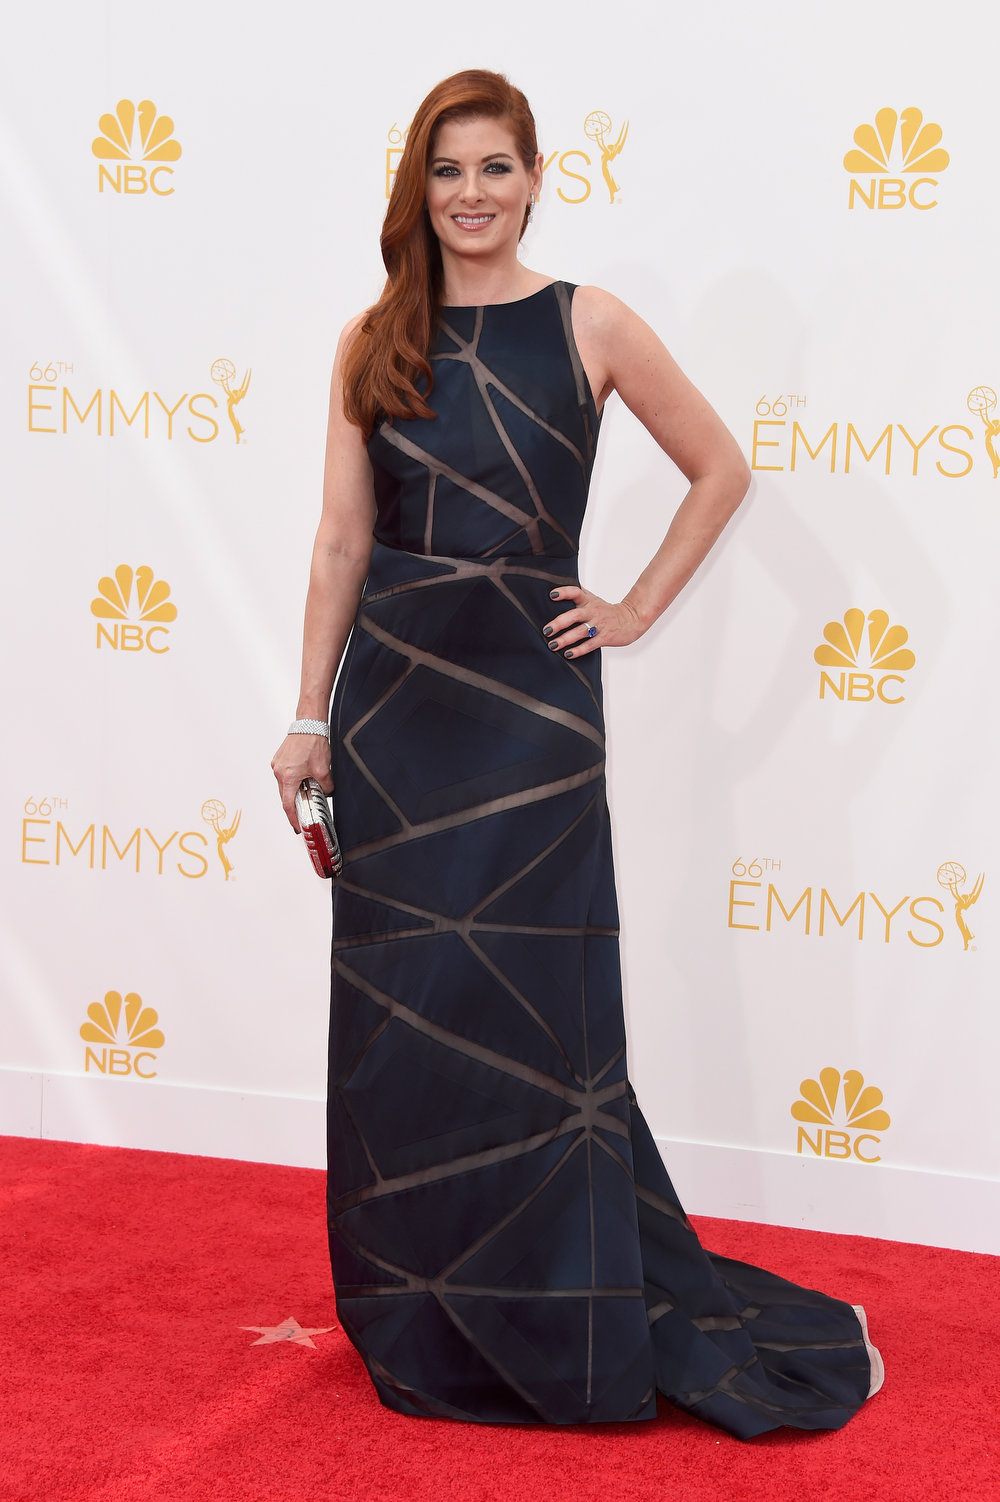 . Actress Debra Messing attends the 66th Annual Primetime Emmy Awards held at Nokia Theatre L.A. Live on August 25, 2014 in Los Angeles, California.  (Photo by Frazer Harrison/Getty Images)